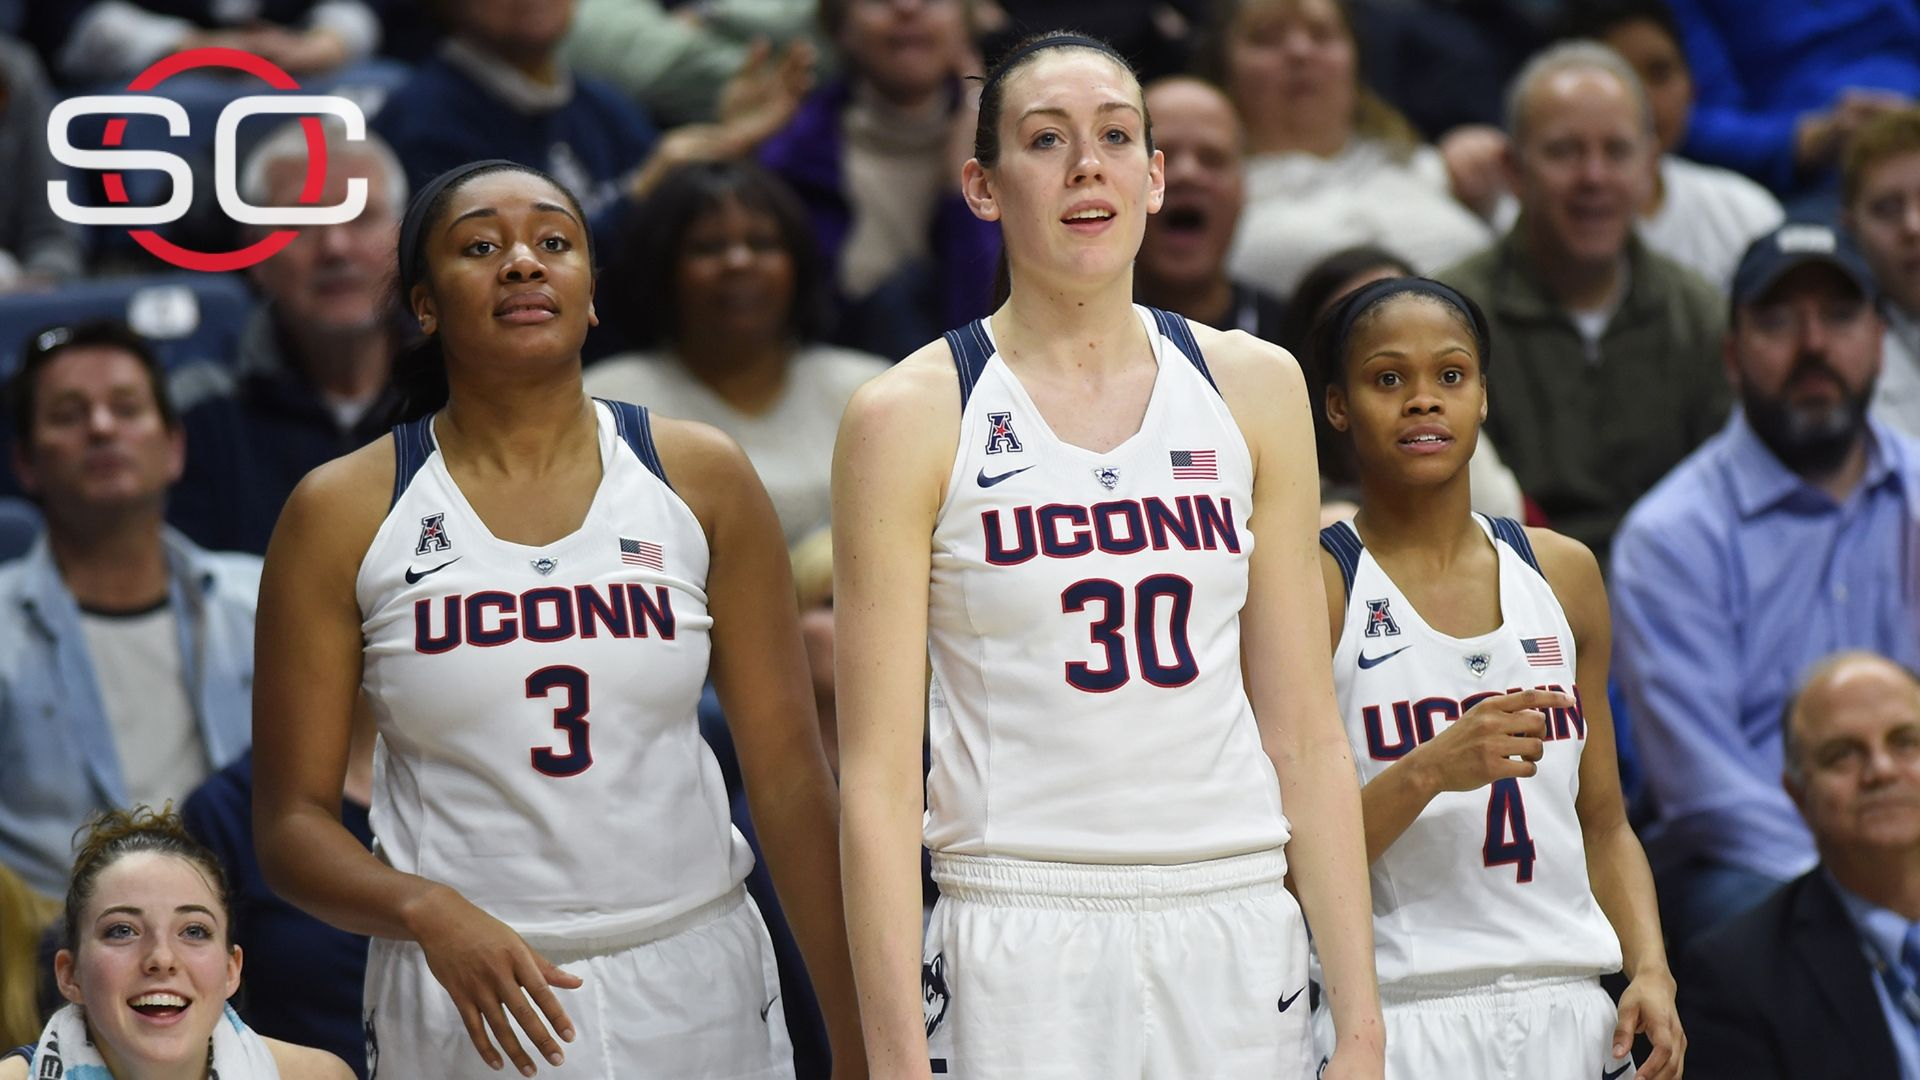 UConn women overwhelming favorites in NCAA tourney